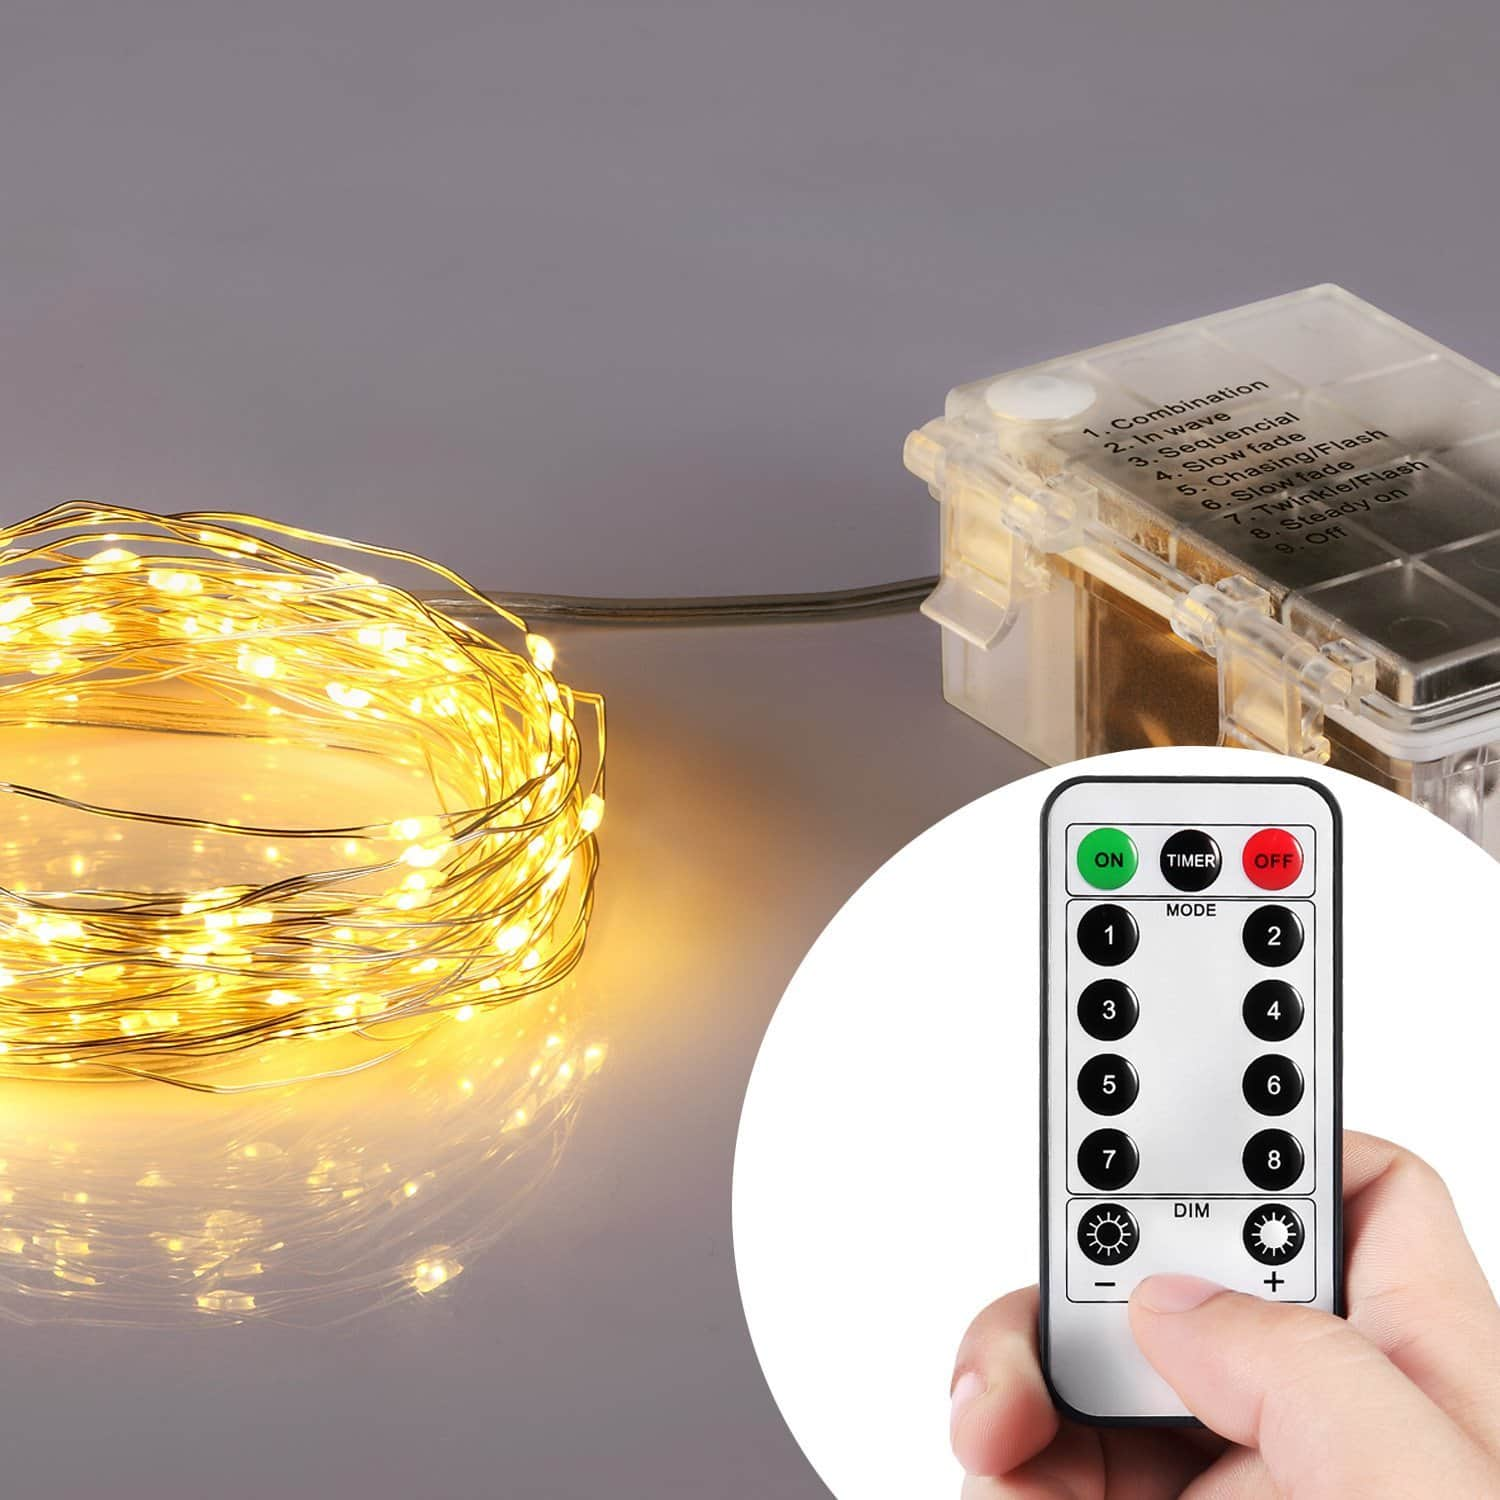 Homestarry Battery Operated Micro LED String Lights, 32-Feet with Wireless handheld remote control $12.50